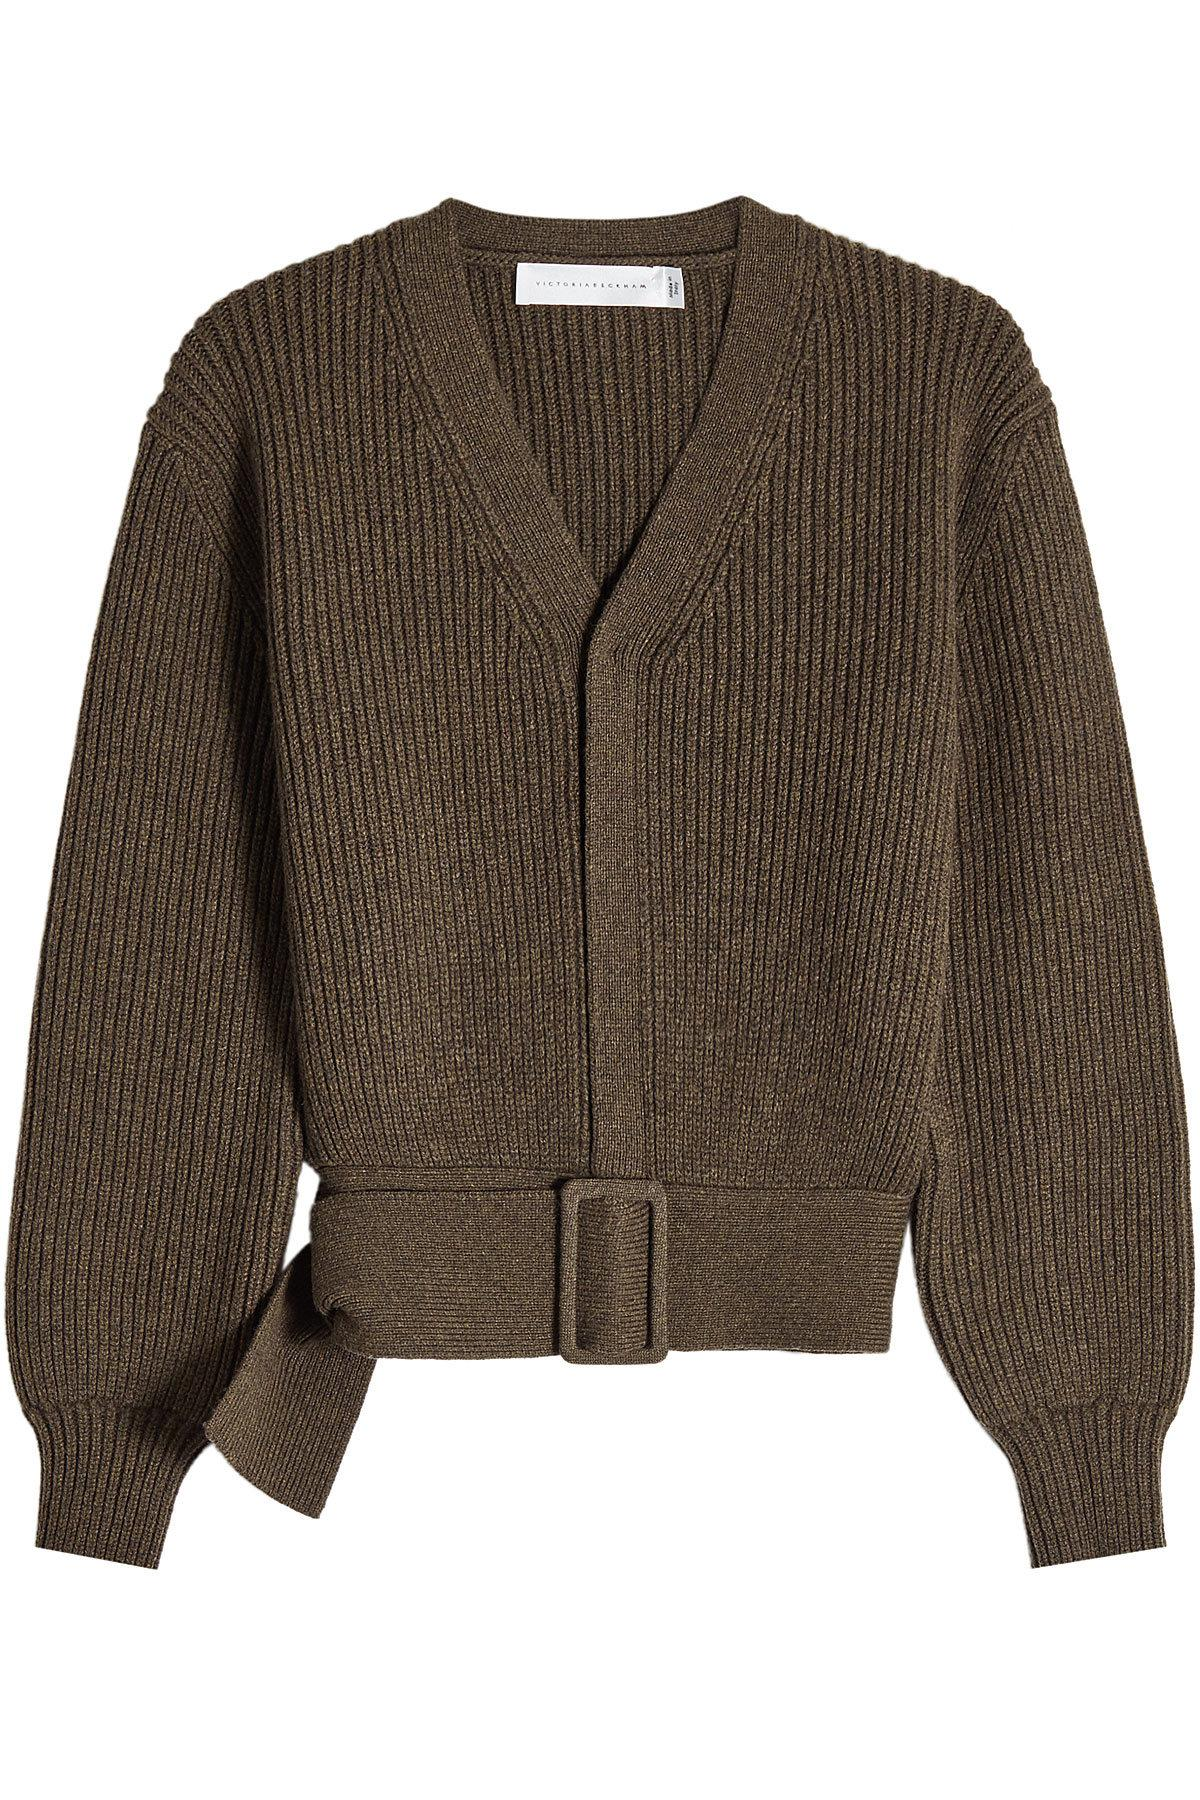 KNITWEAR - Cardigans Victoria Beckham Sale Original Clearance Cheapest Price K5dISmG